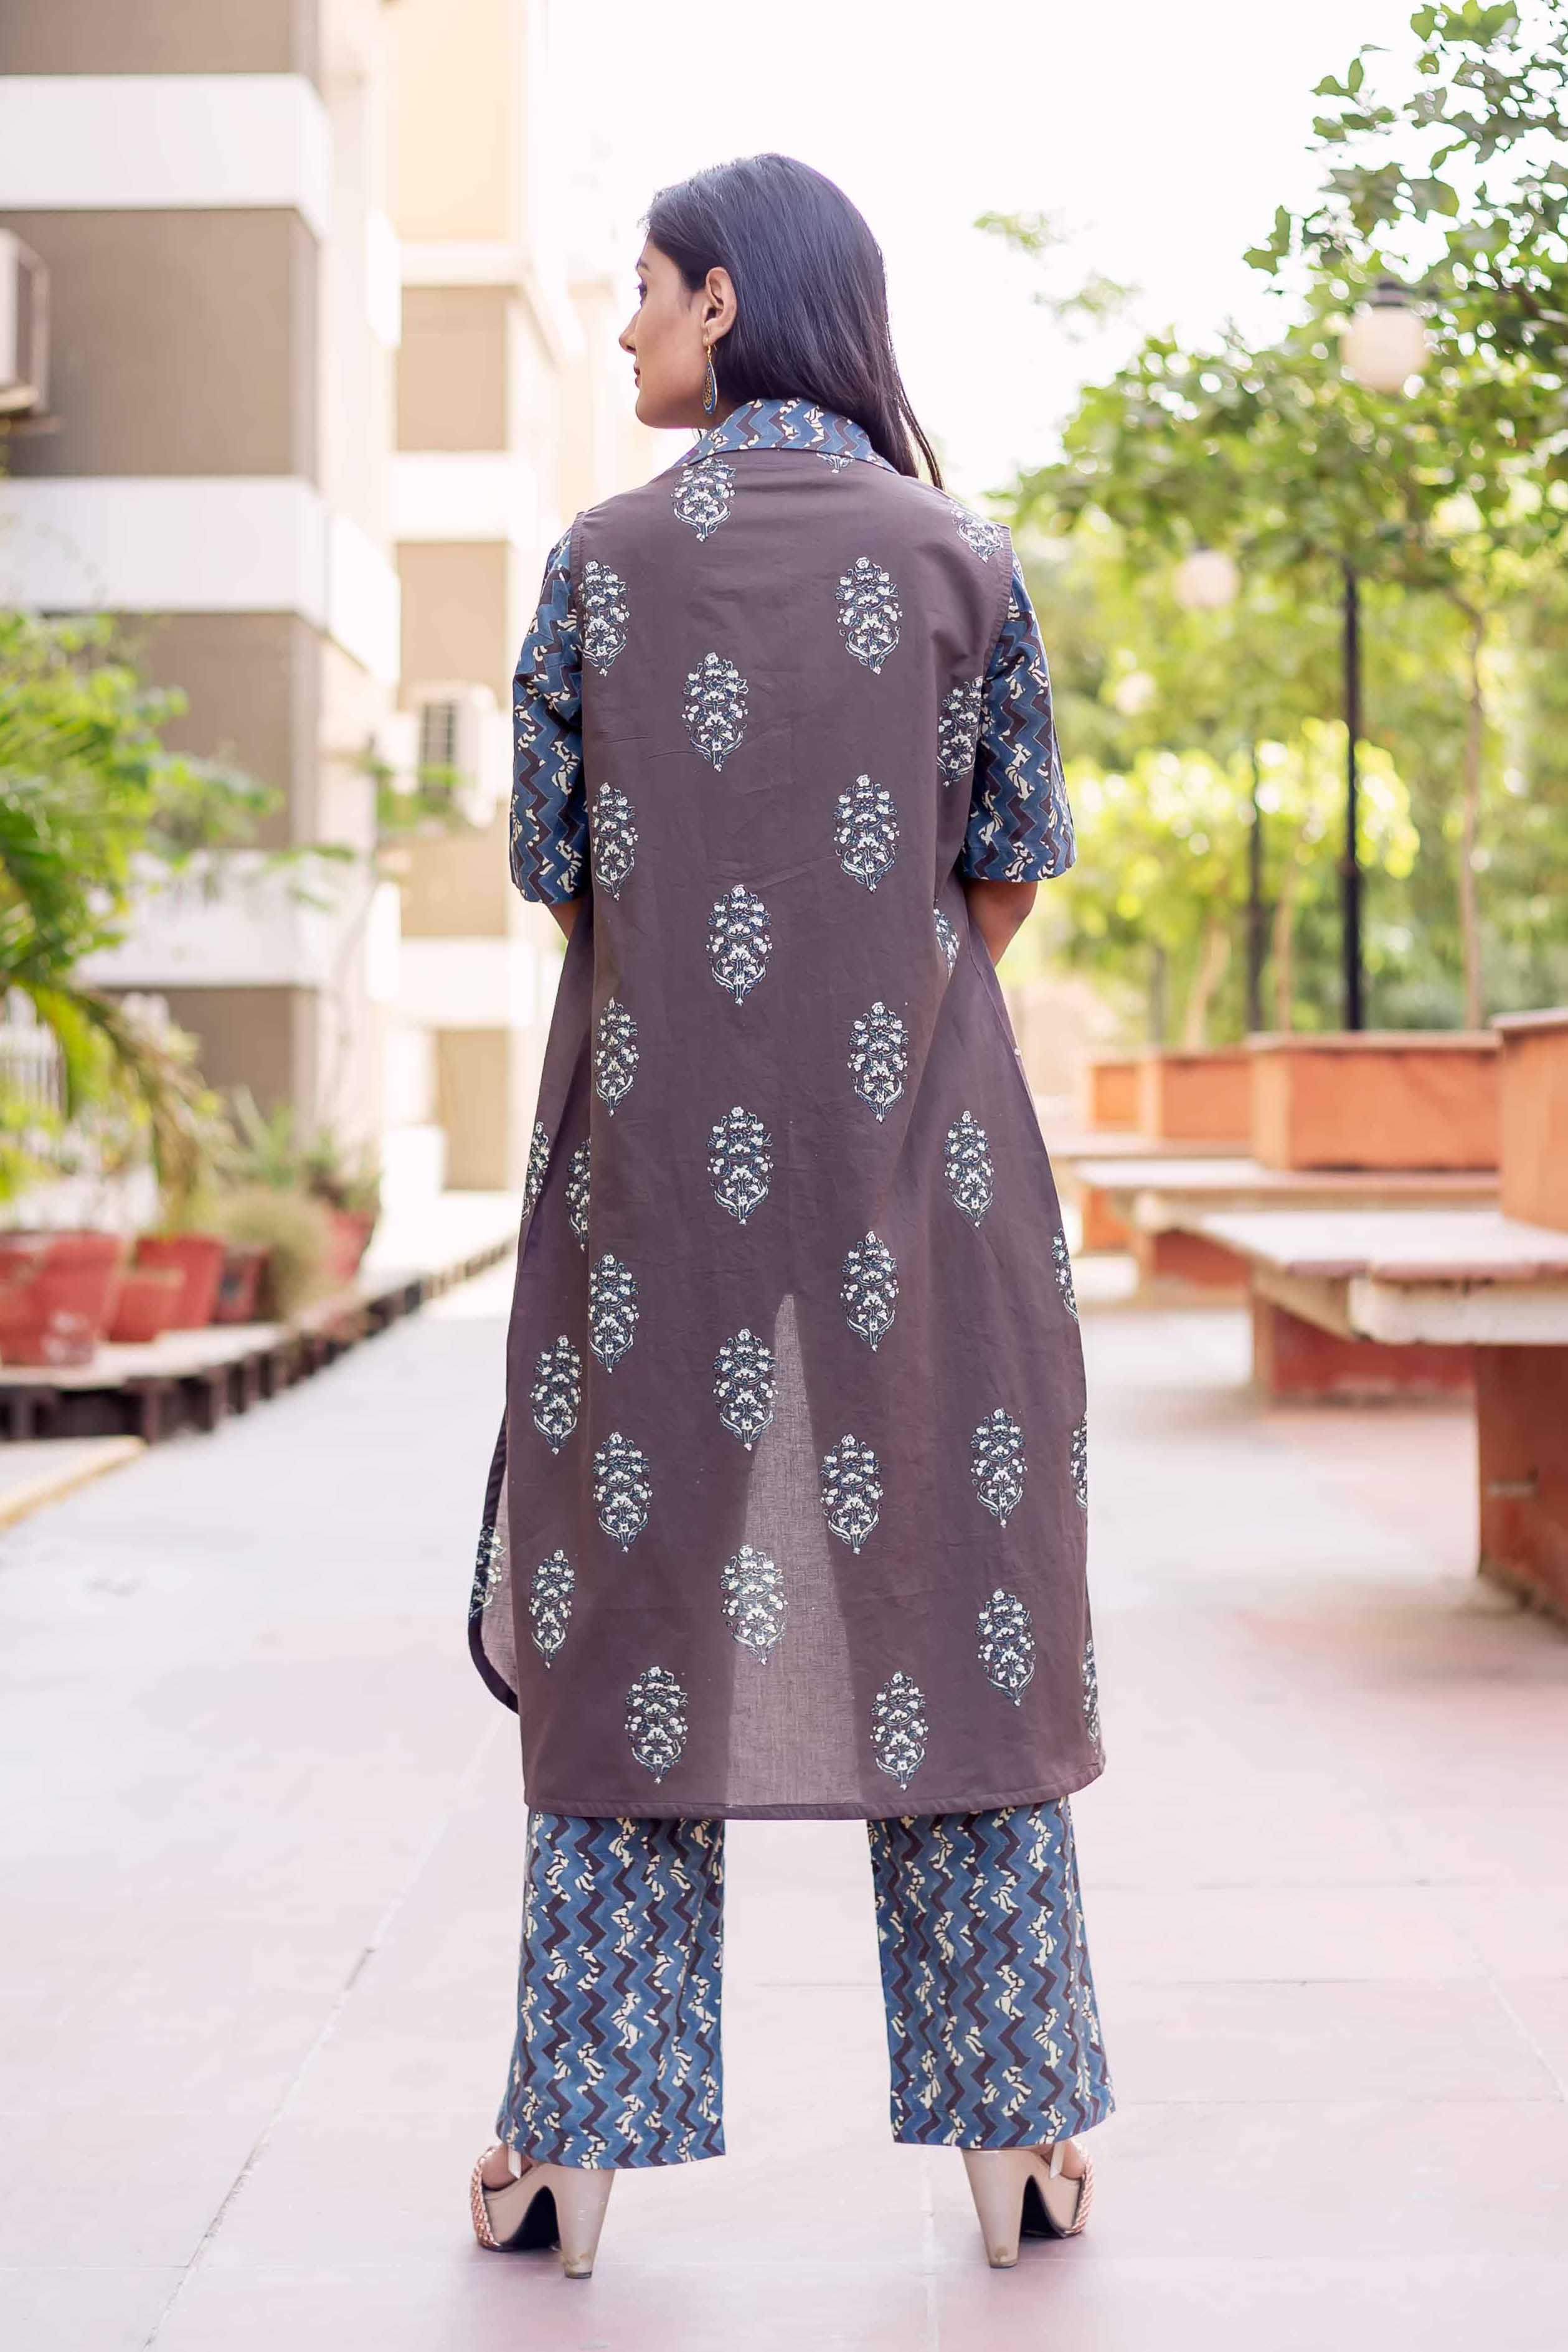 Hand Block Printed Long Jumpsuit with Sleeveless Jacket for Women Online